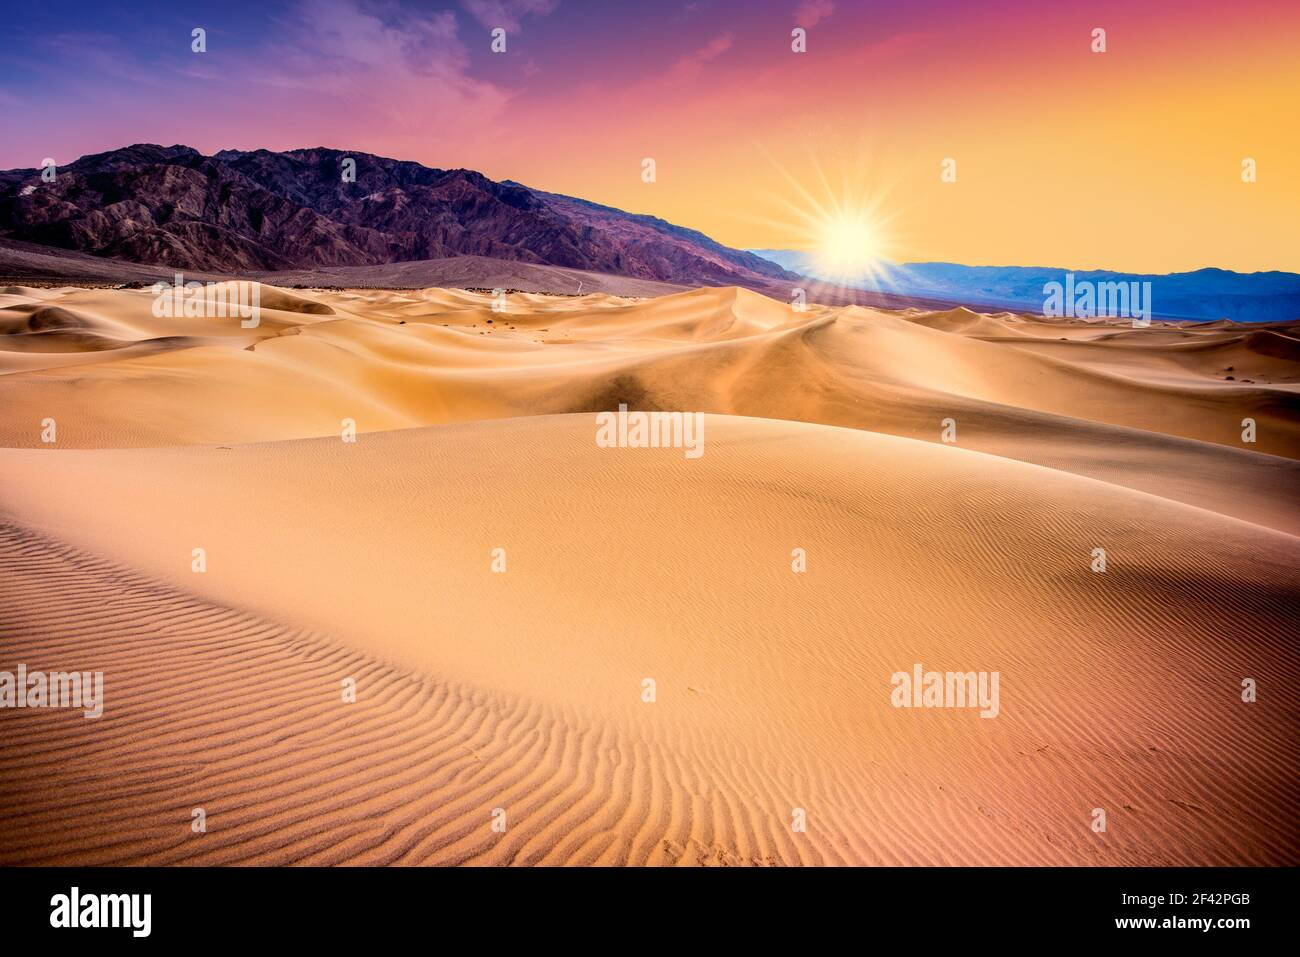 Death Valley, California sand dunes with colorful sunset Stock Photo